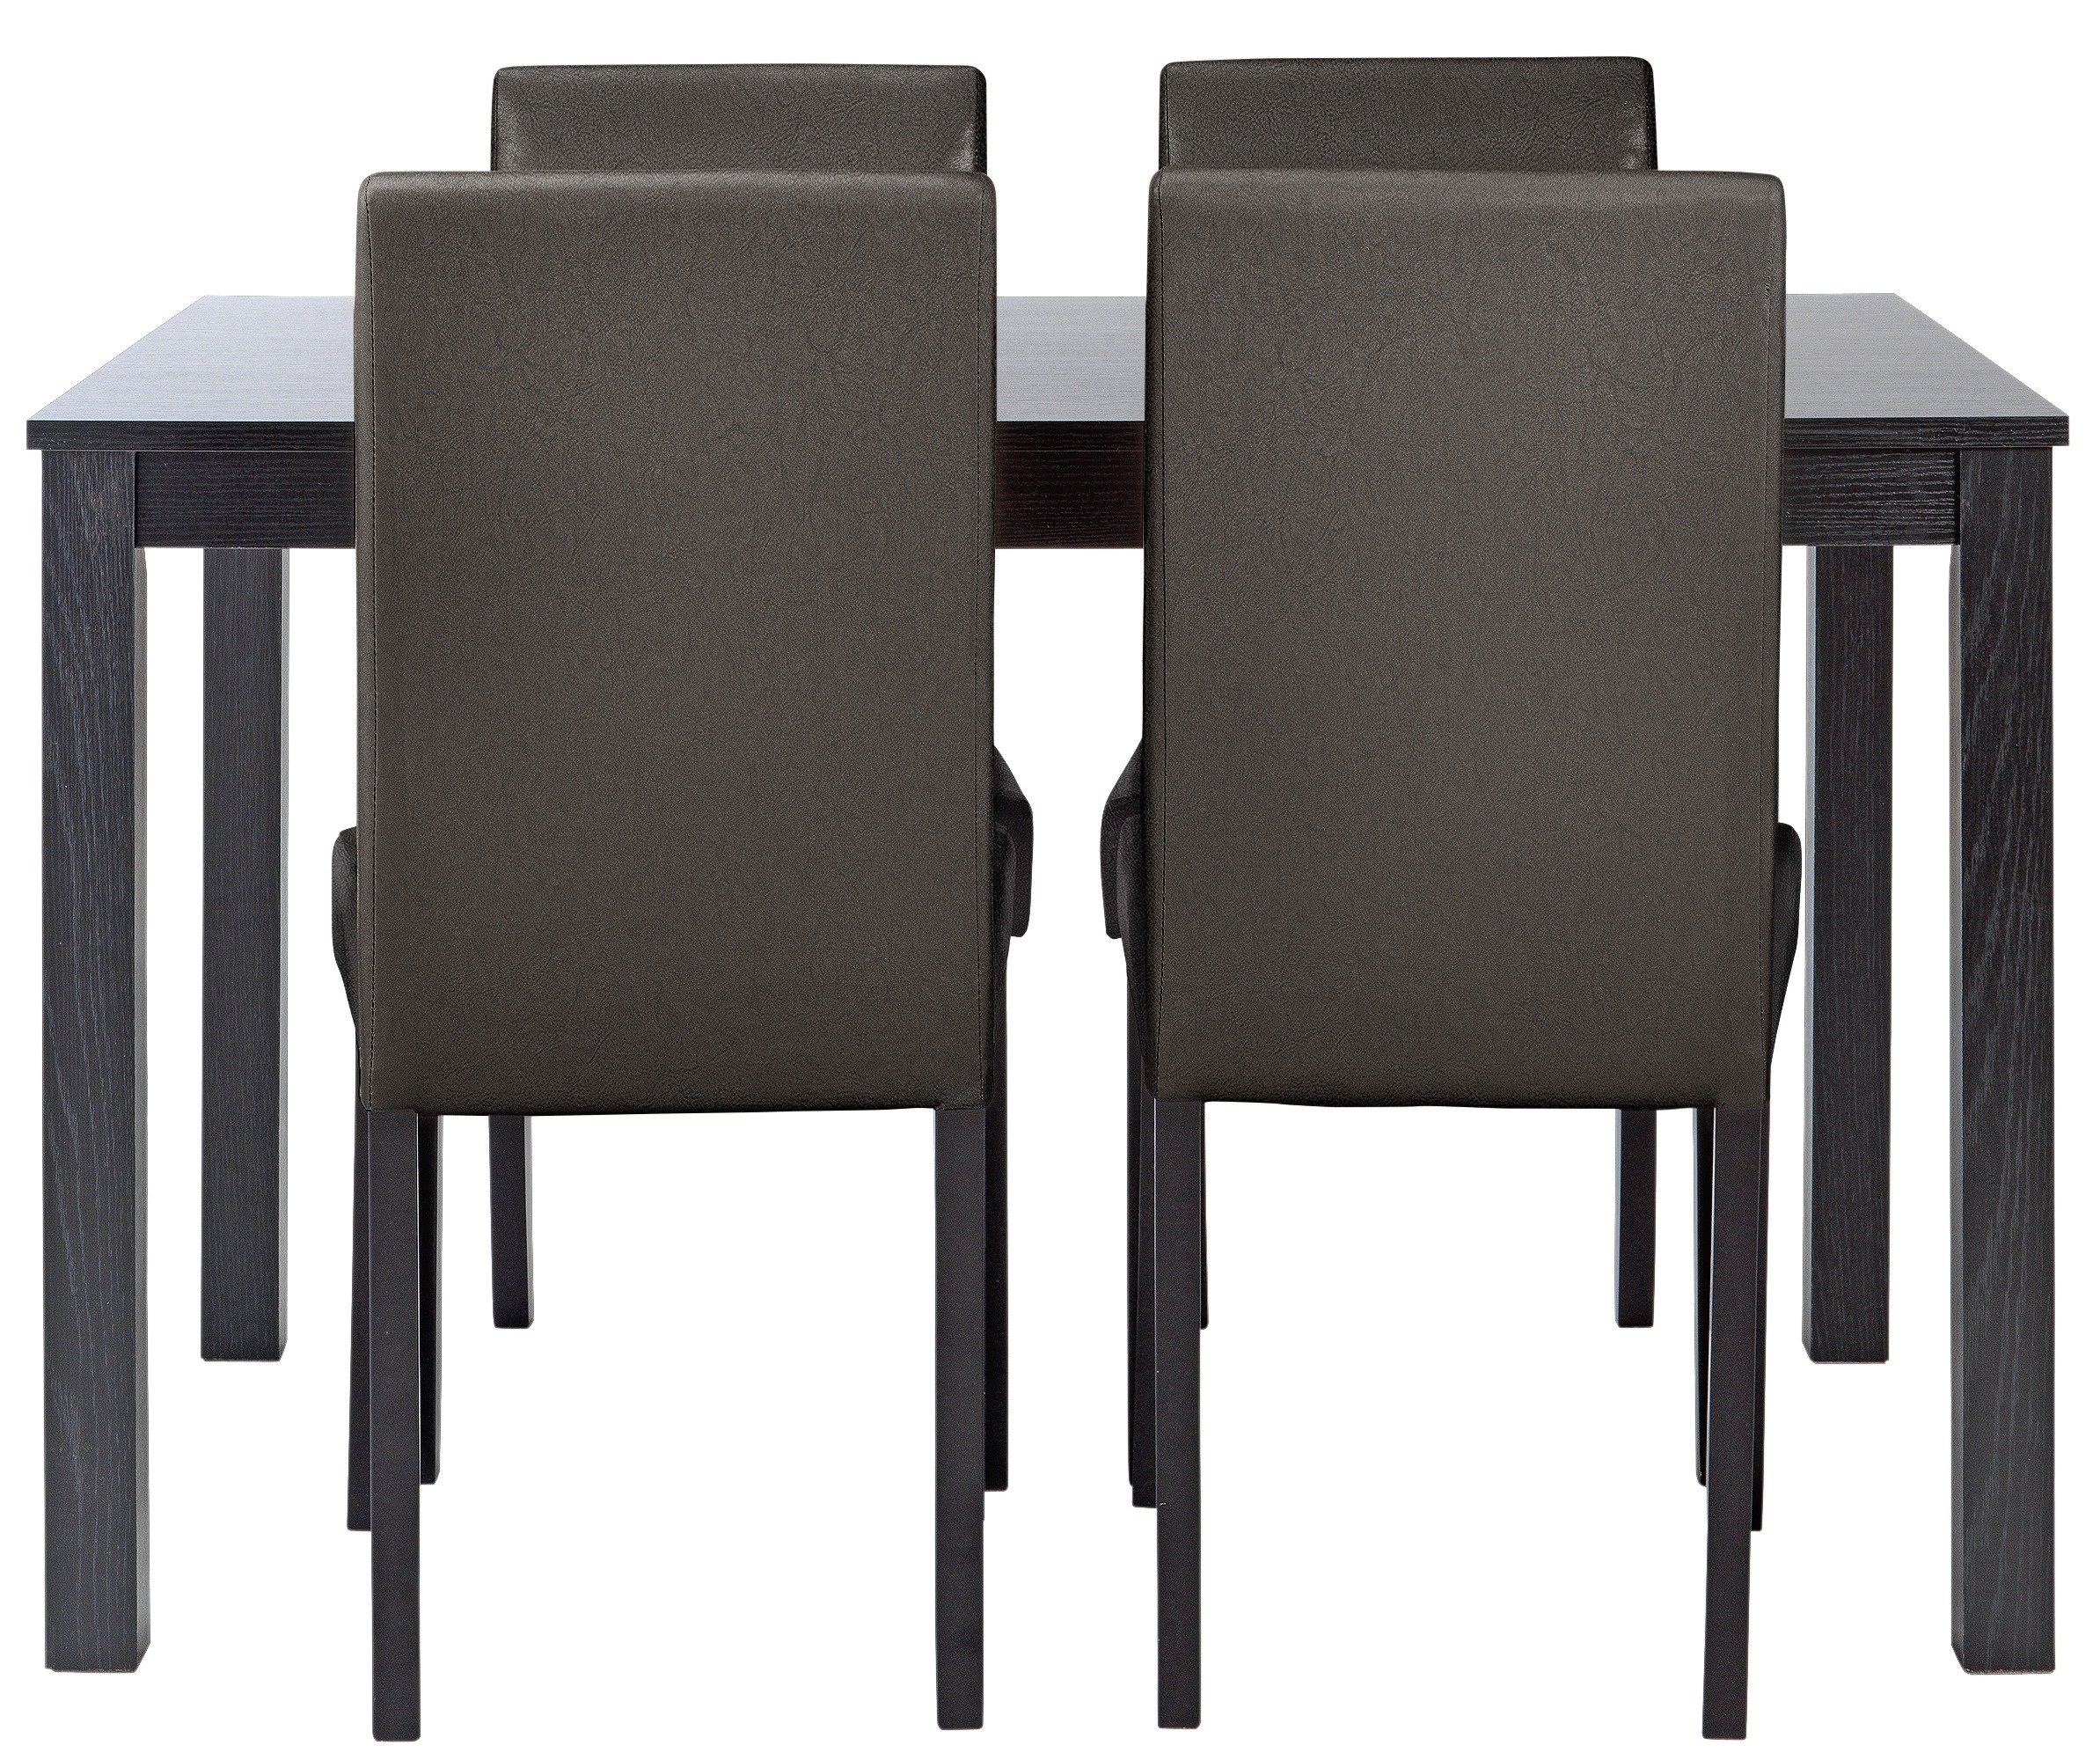 Argos Table And Chairs In Sale: SALE On HOME New Elmdon Wood Effect Dining Table & 4